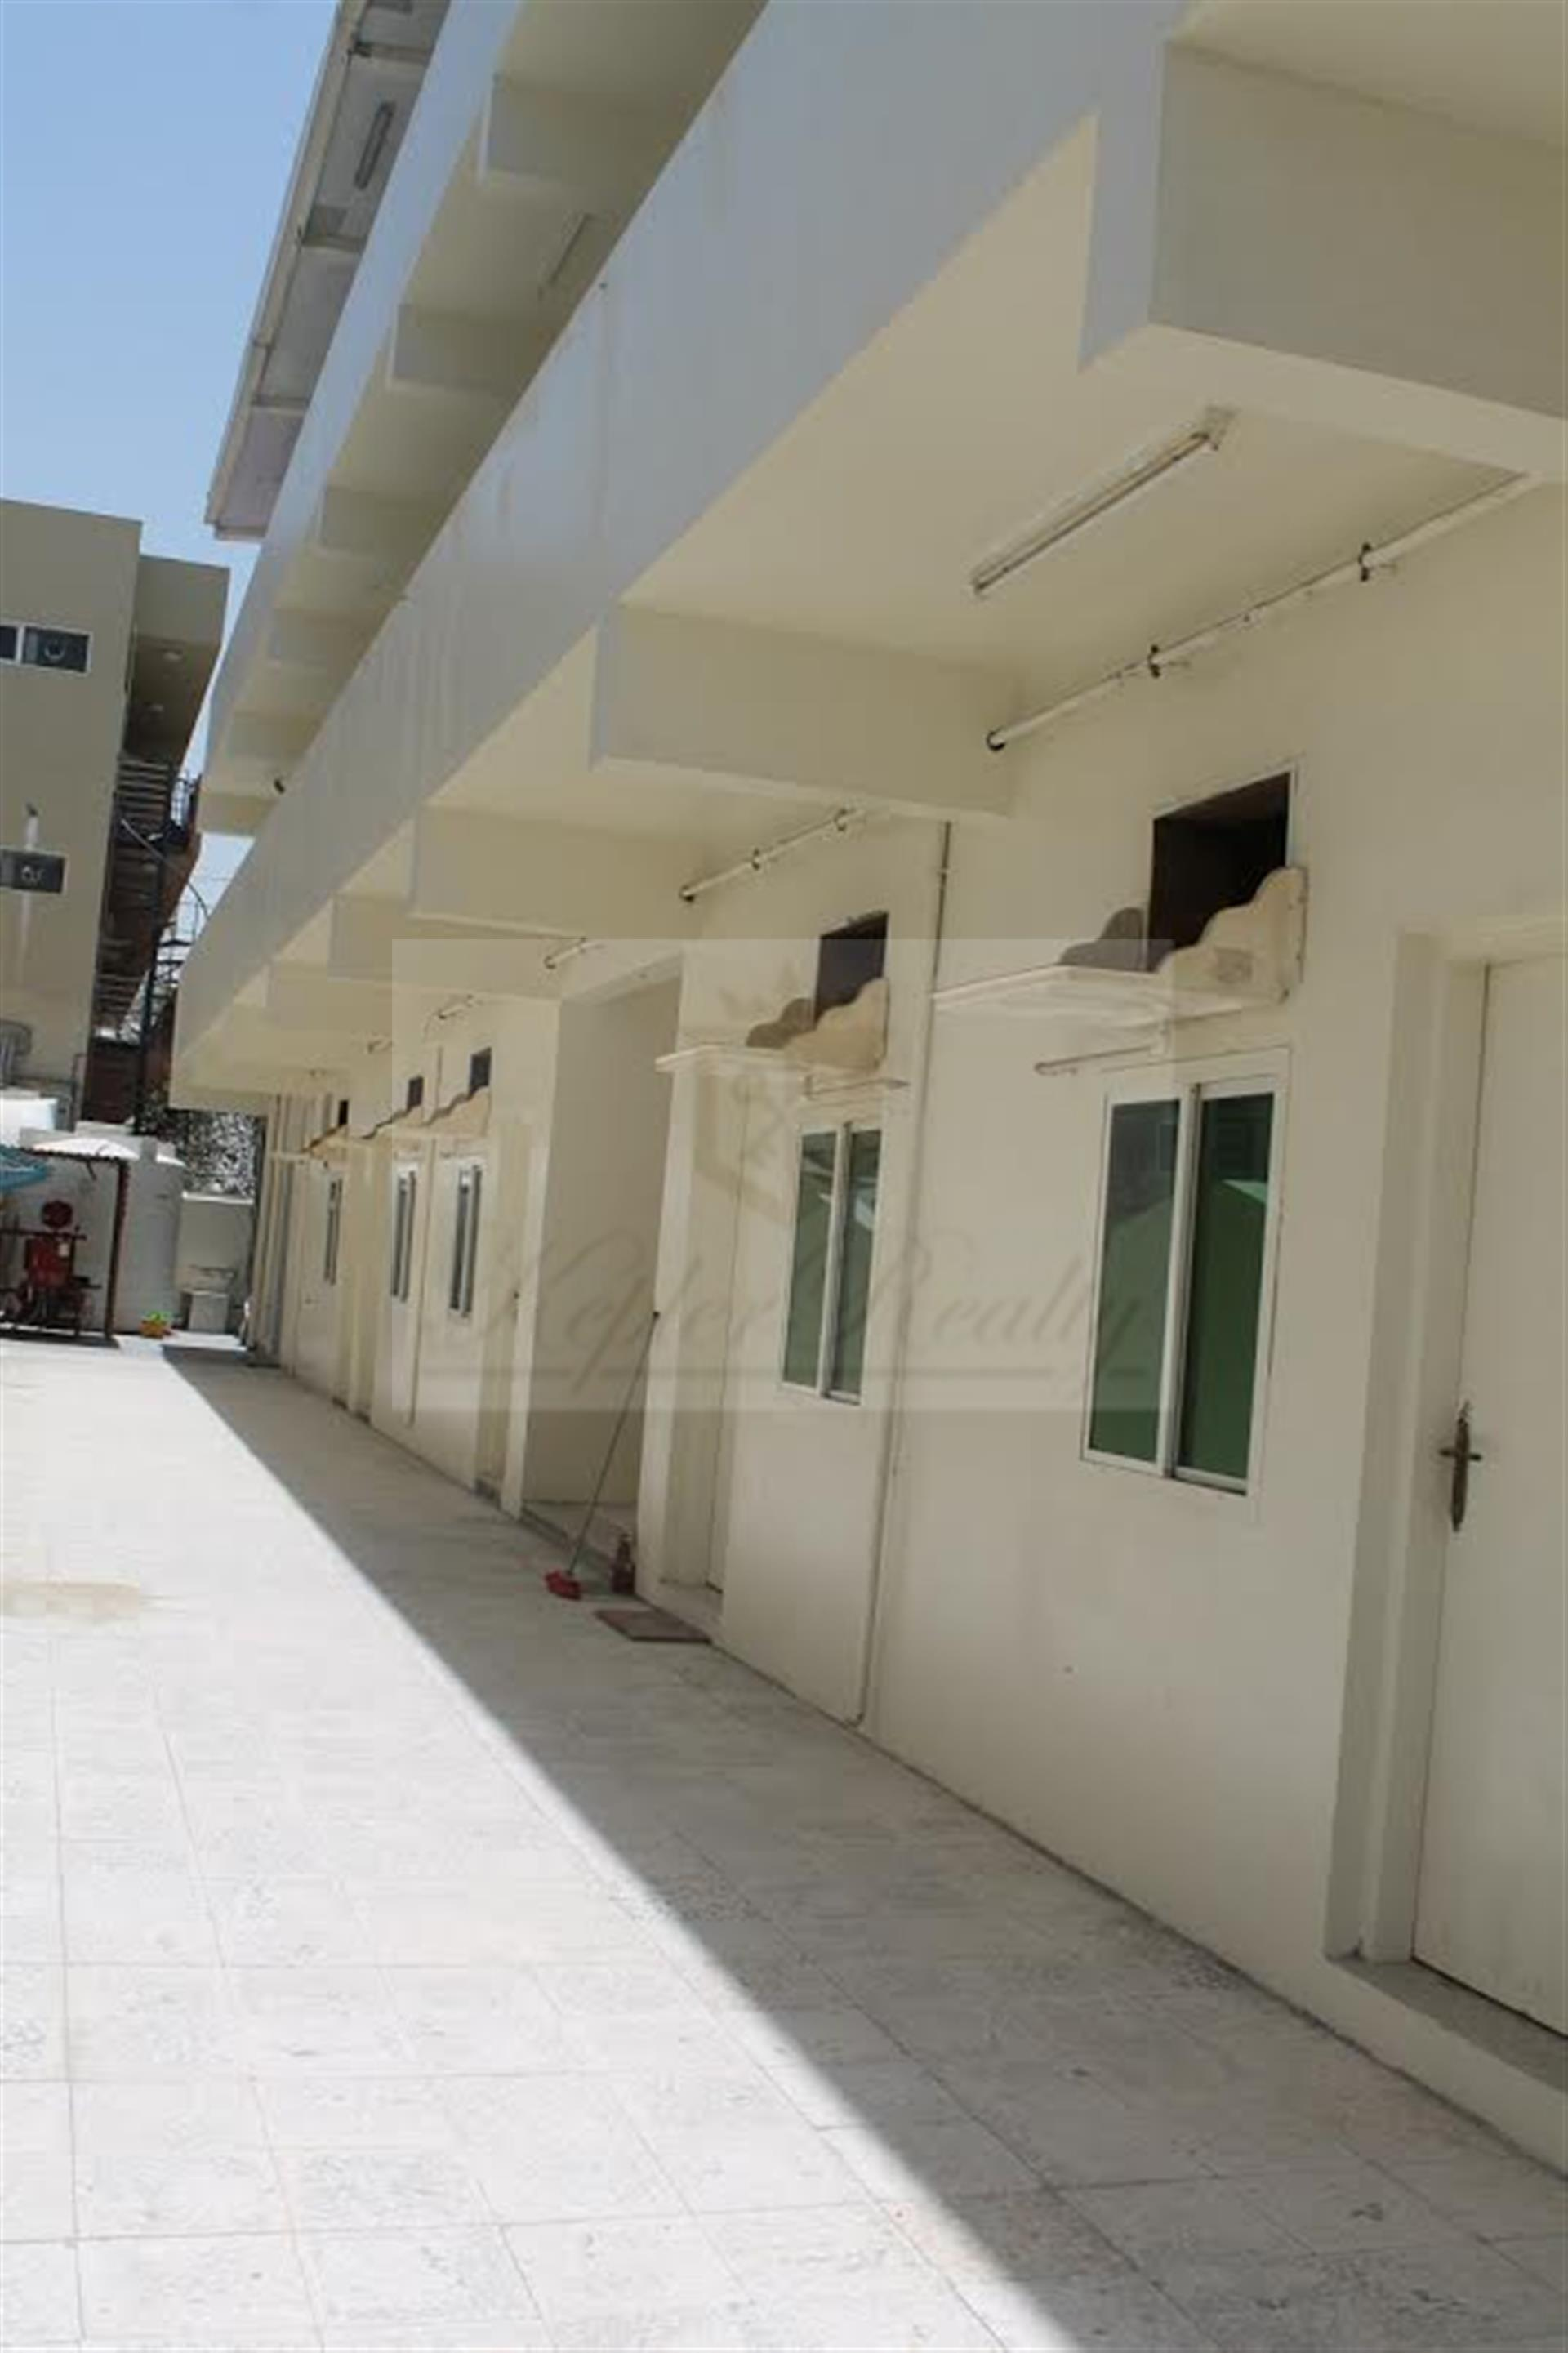 Cheap Price - Brand New Camp in Sonapur- 120 Rooms Available 4,6,8 people Capacity in each room.